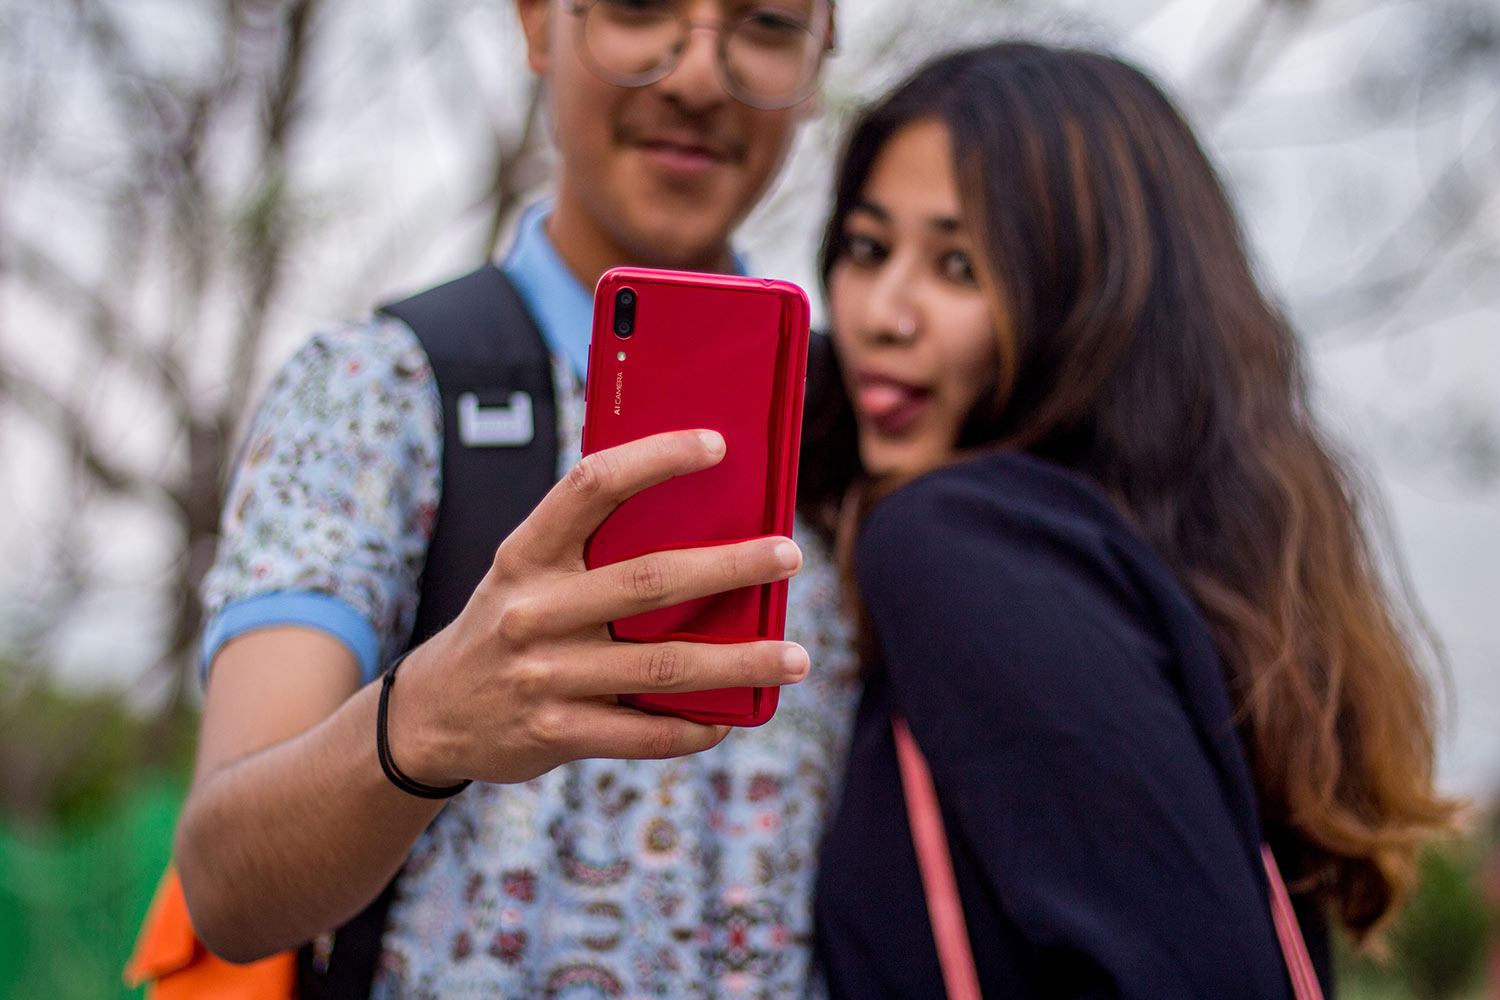 Huawei Y7 Pro 2019: The best entry-level phone in Nepal?